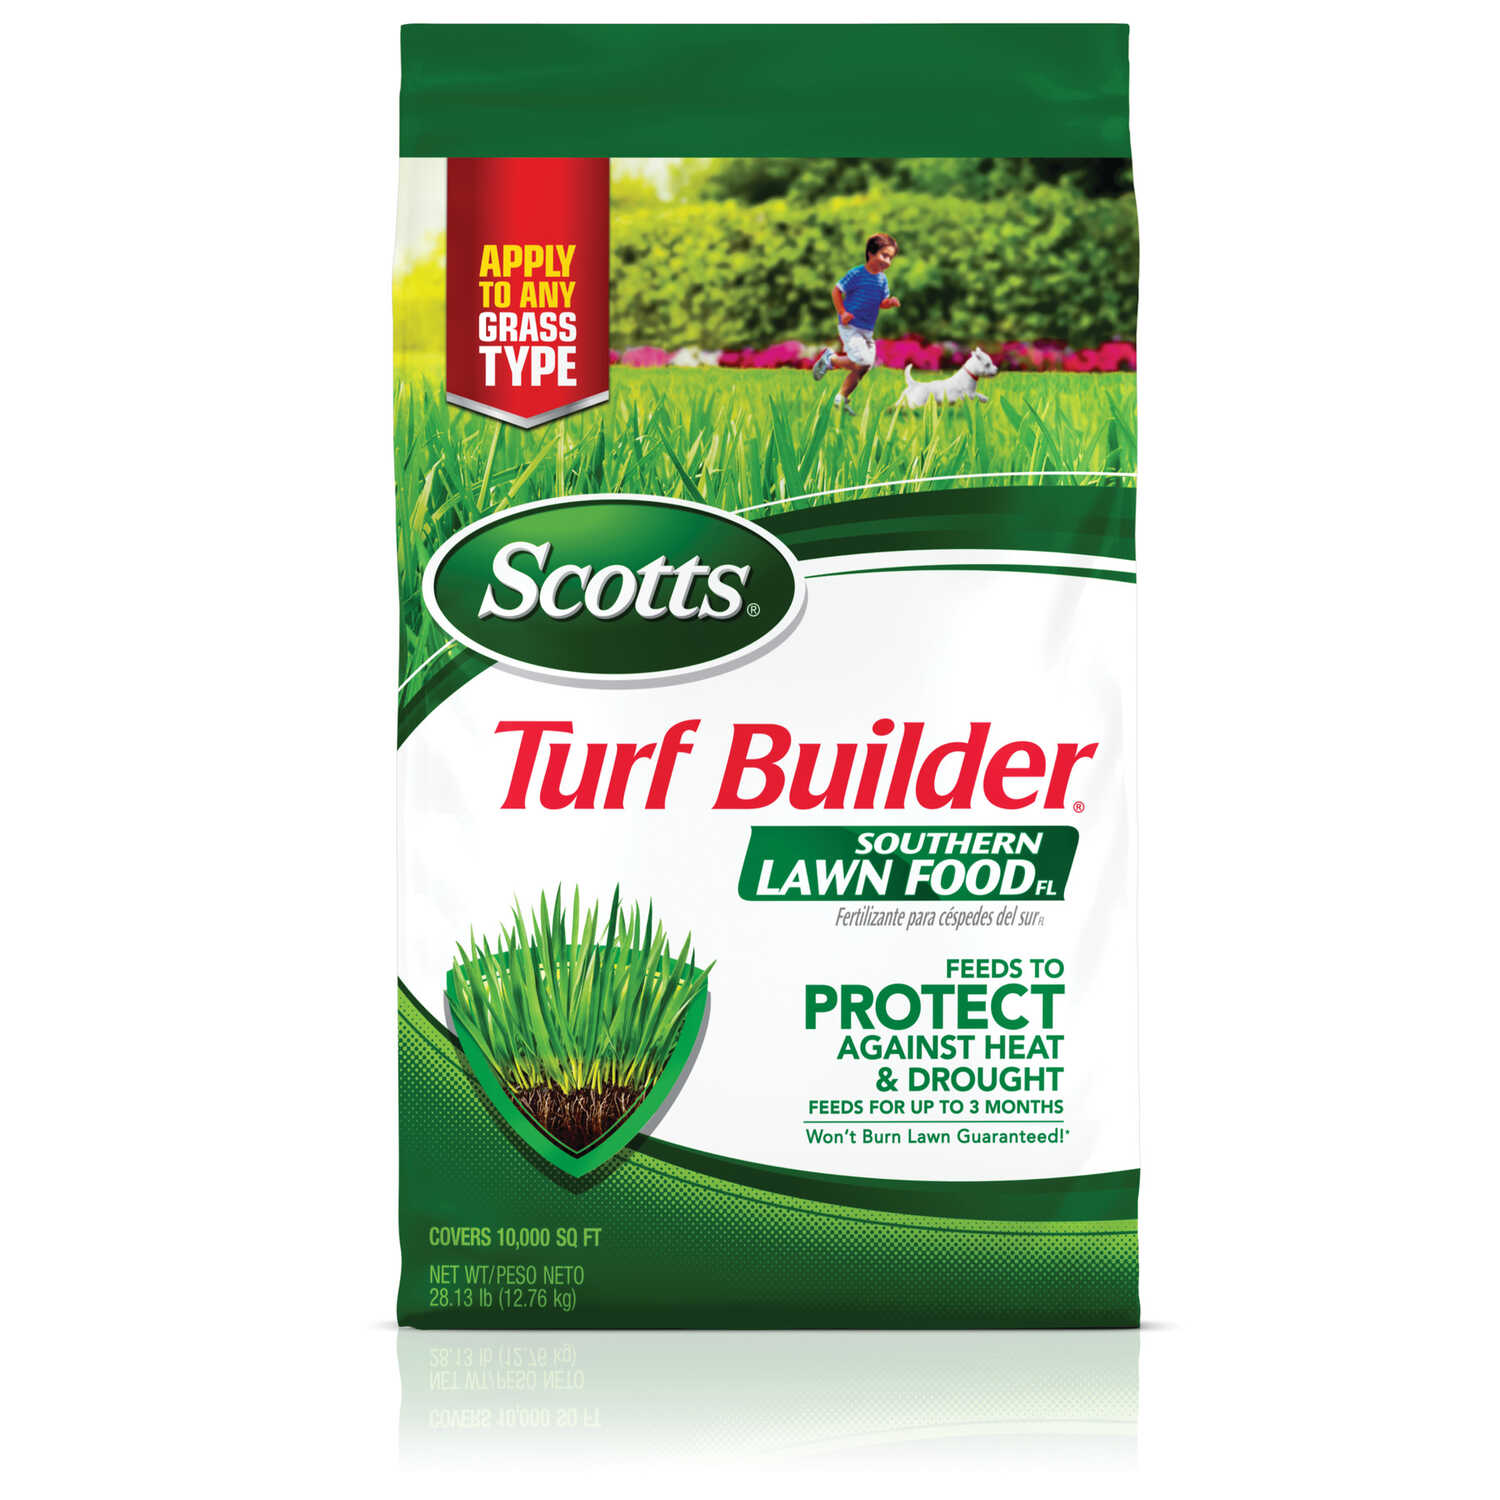 Scotts  Turf Builder  32-0-10  Lawn Food  For All Florida Grasses 28.87 lb. 10000 sq. ft.